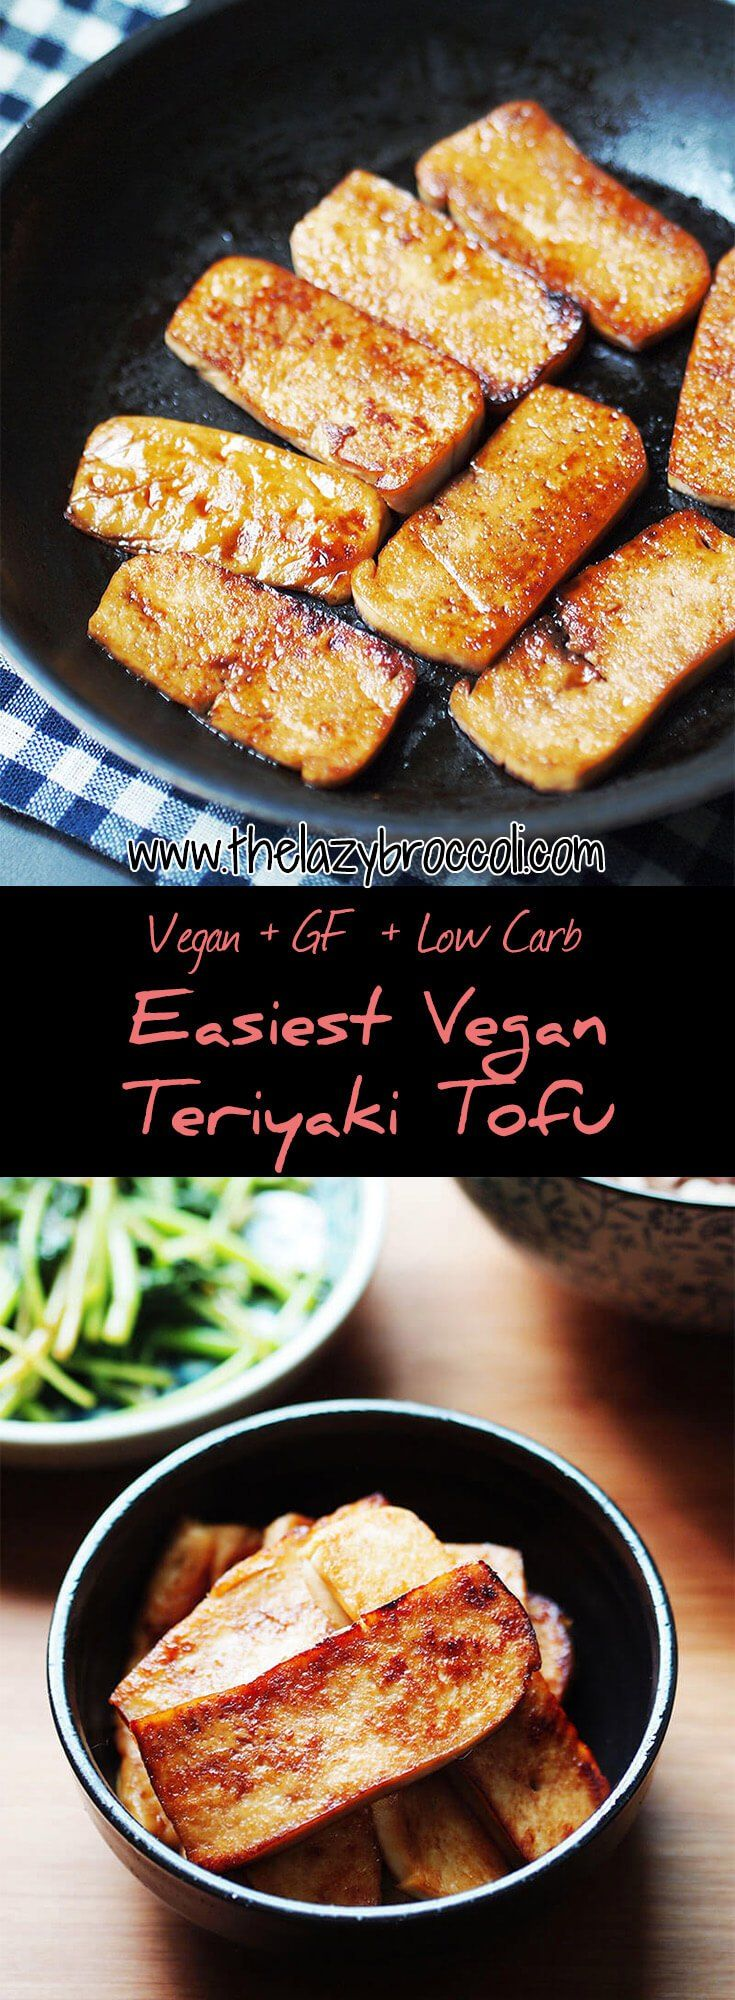 This teriyaki tofu requires only 5 ingredients, 1 pan, and 15 minutes! Cn use honey instead